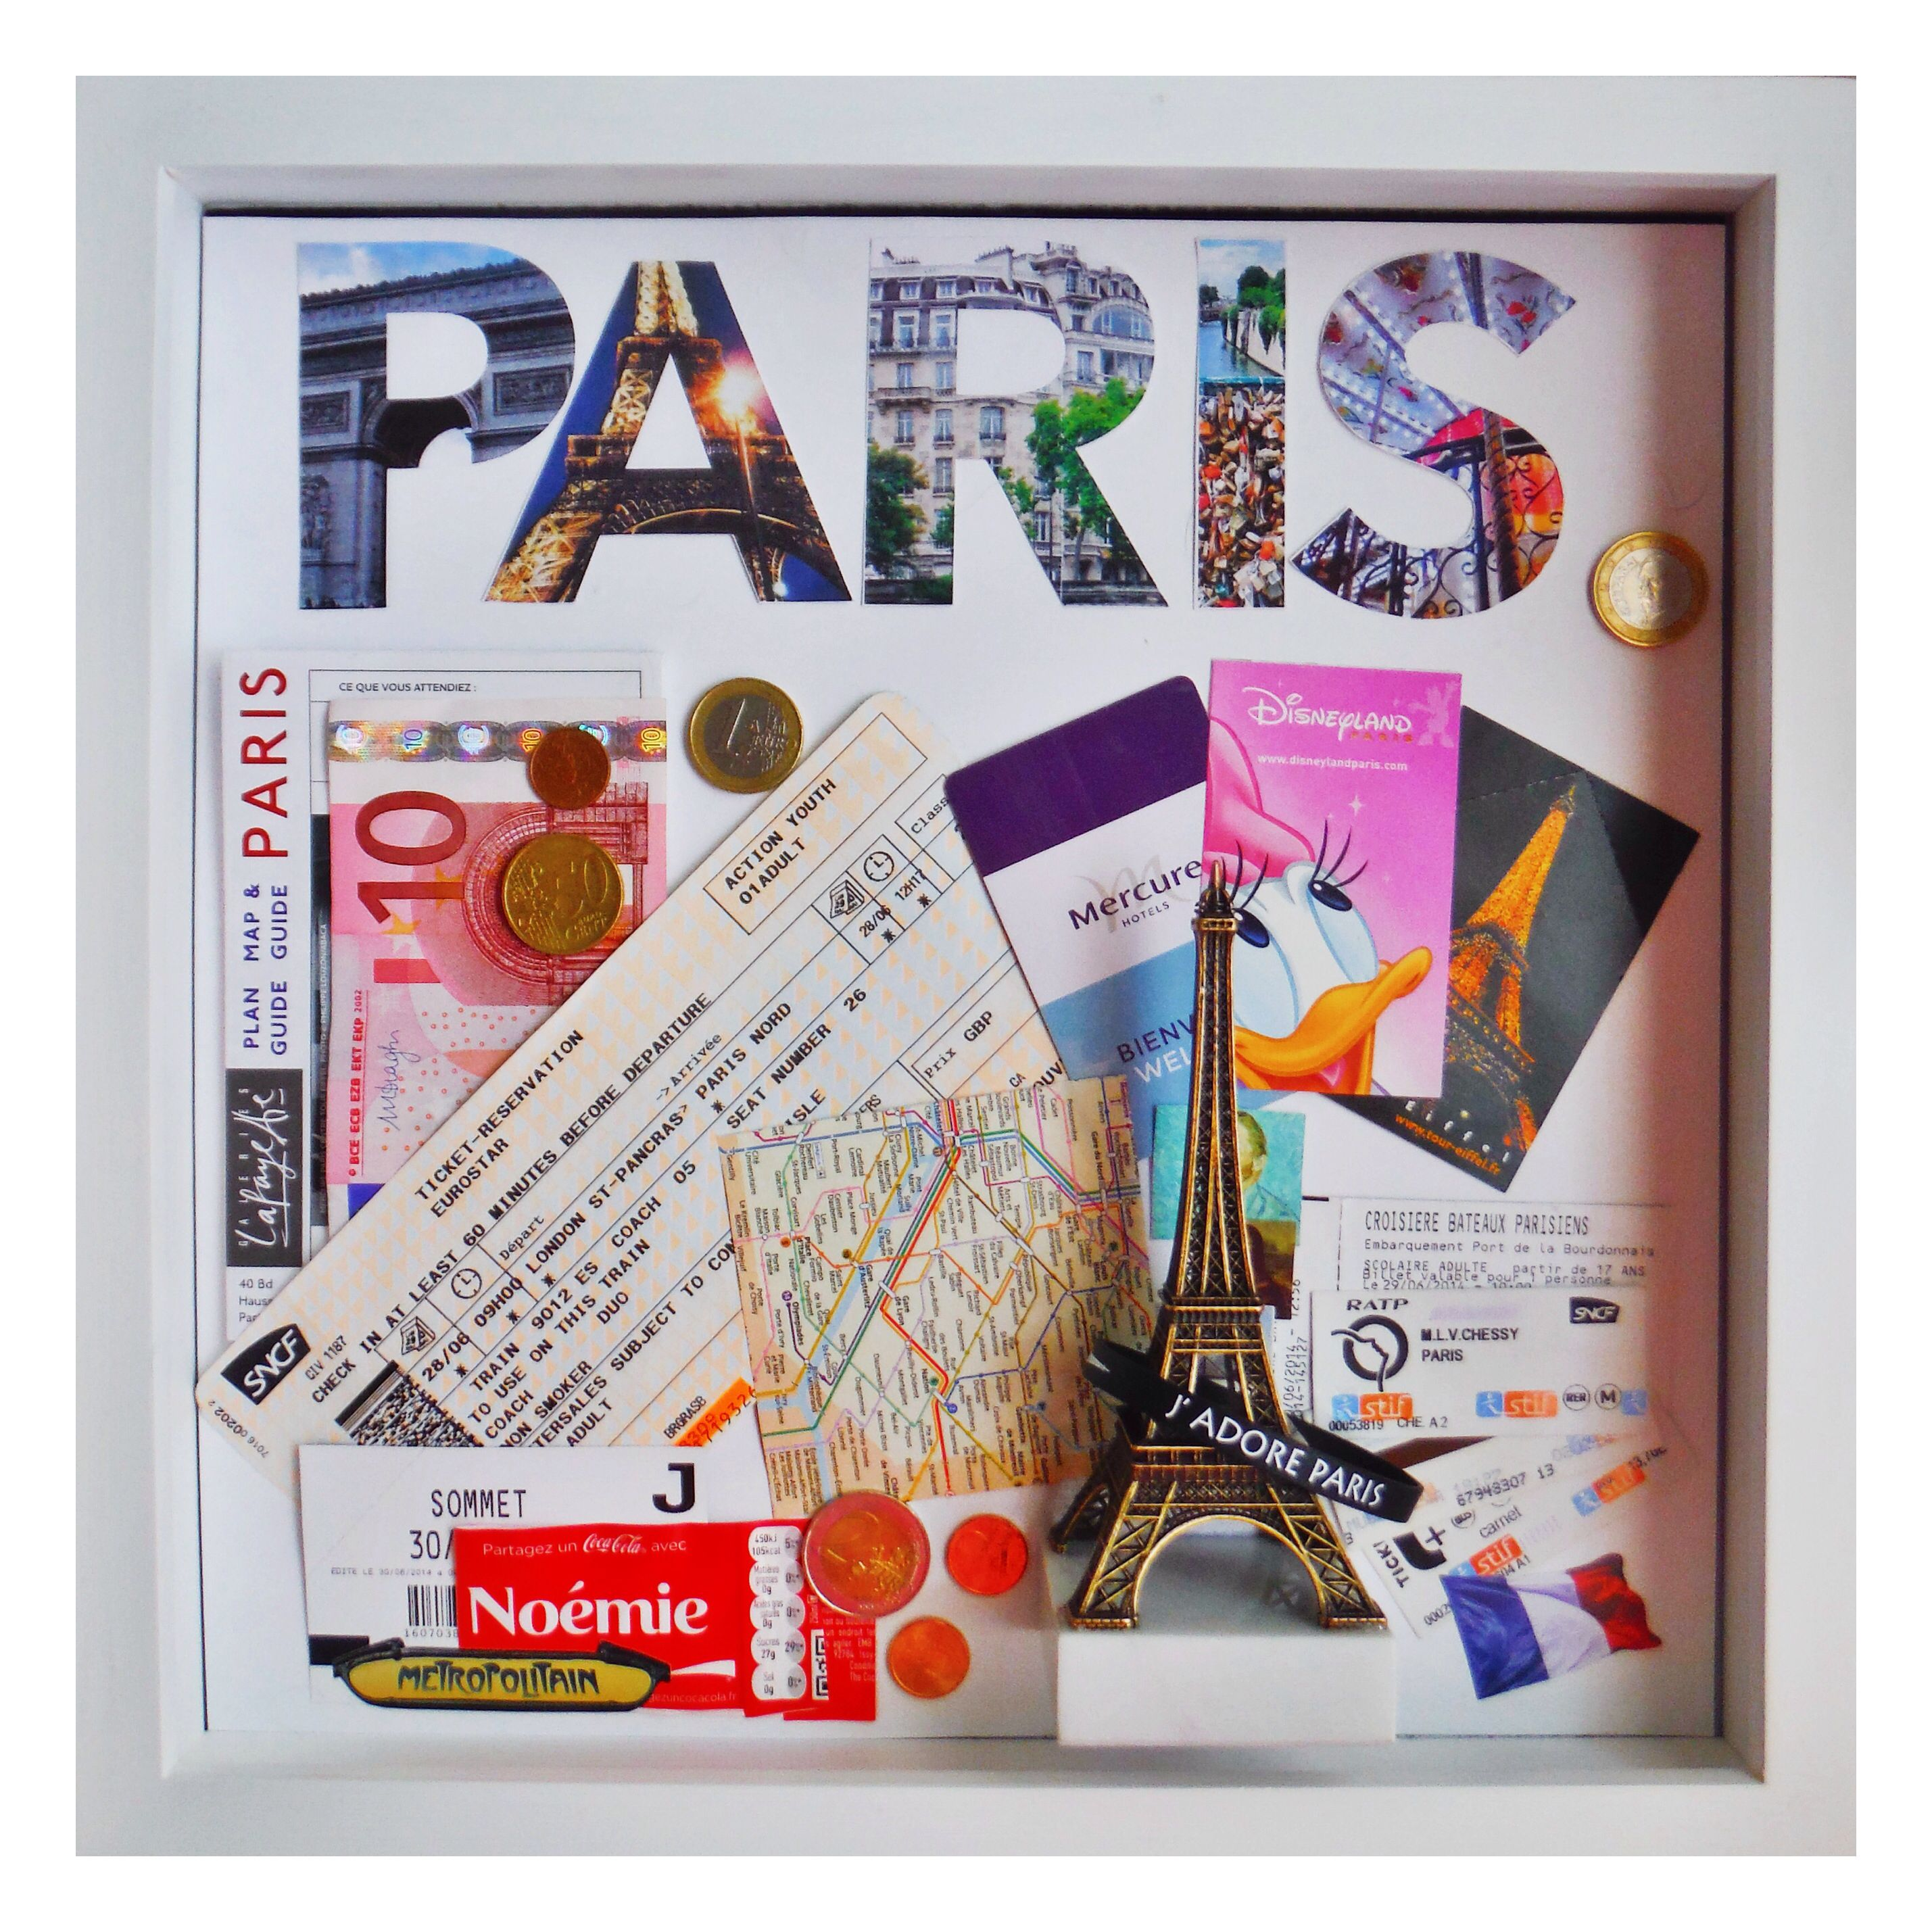 DIY travel memento shadowbox. Display ticket stubs, maps, currency, and other precious items from your travels.